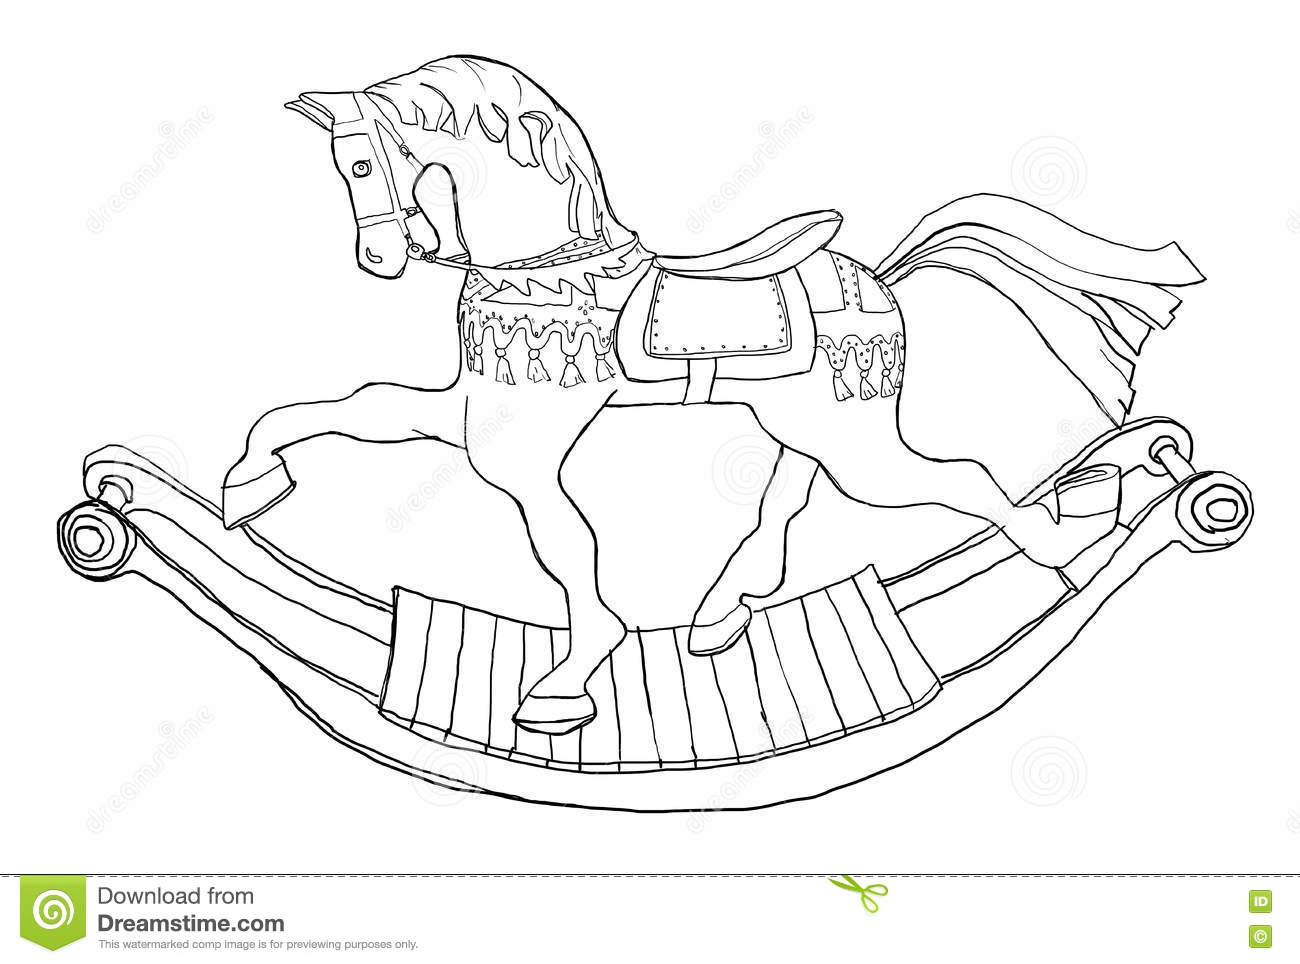 Carousel Rocking Horse Line Art Stock Illustration Illustration Of Abstract Artistry 71287159